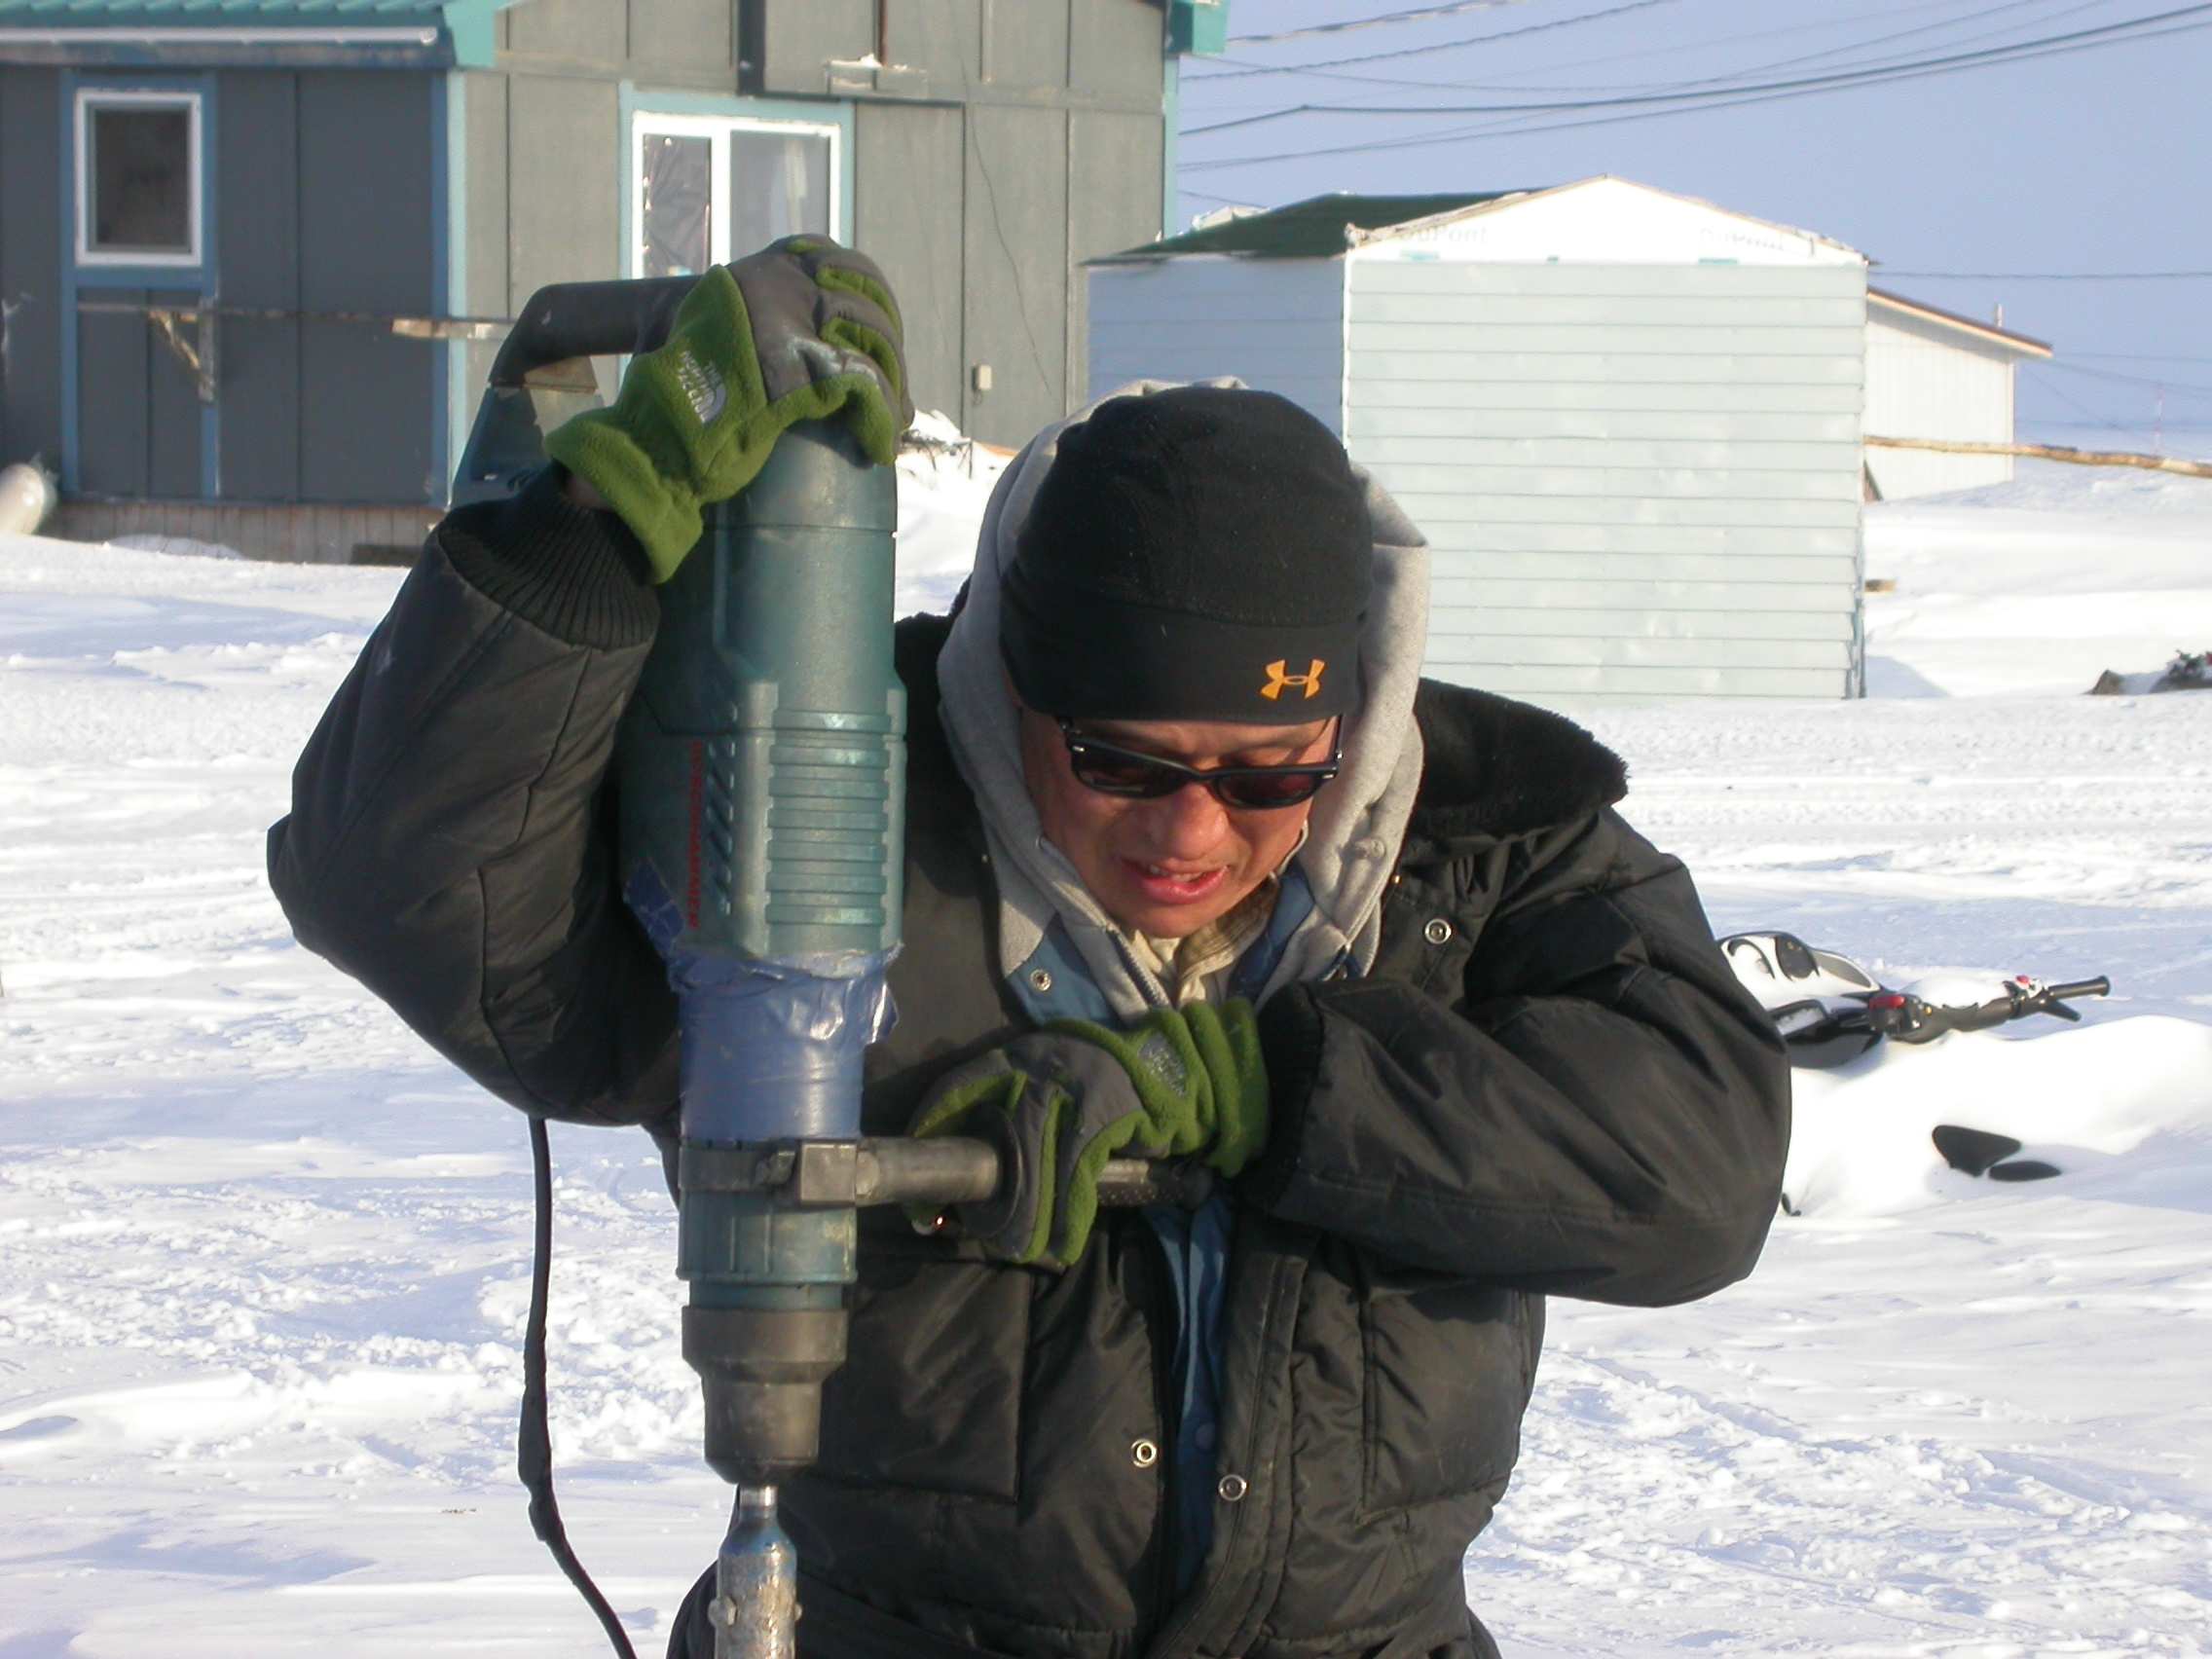 Don't tell anyone, but this mild-mannered, permafrost-drilling scientist is actually Tunnel Man!